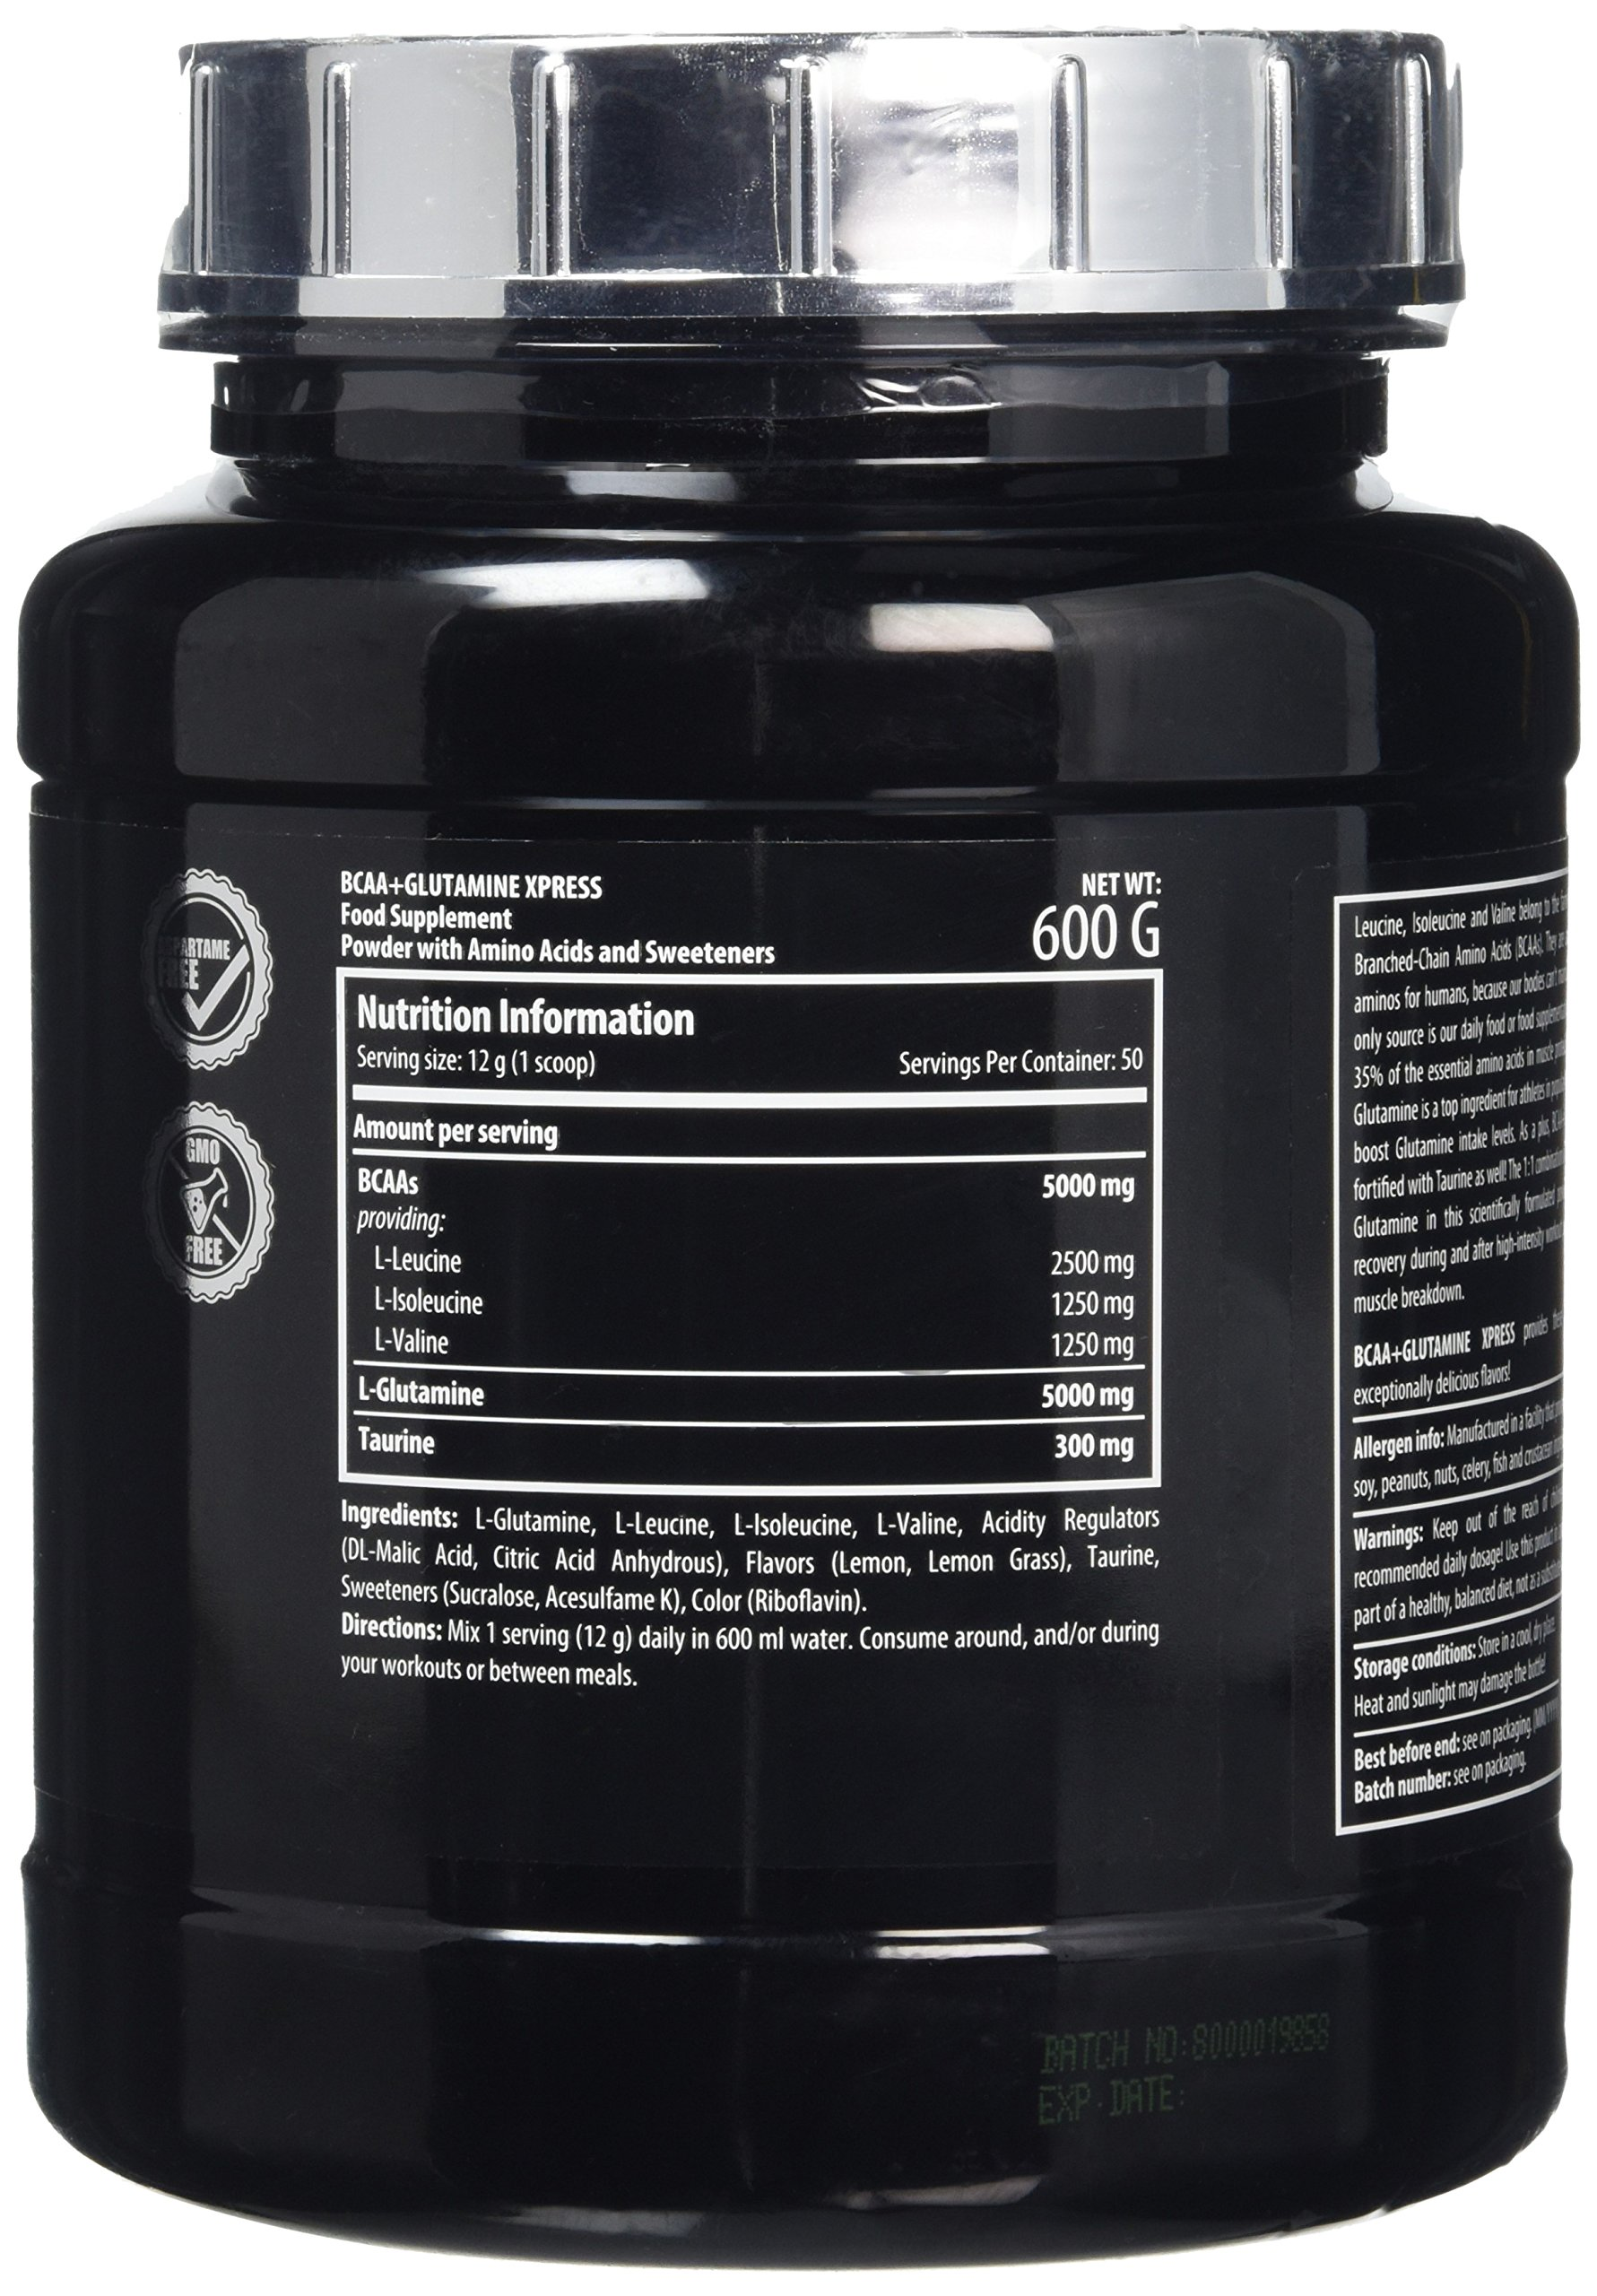 91IR7yCGAtL - Scitec Nutrition BCAA + Glutamine Xpress, Fortified with Taurine, Sugar Free, 600 g, Lime